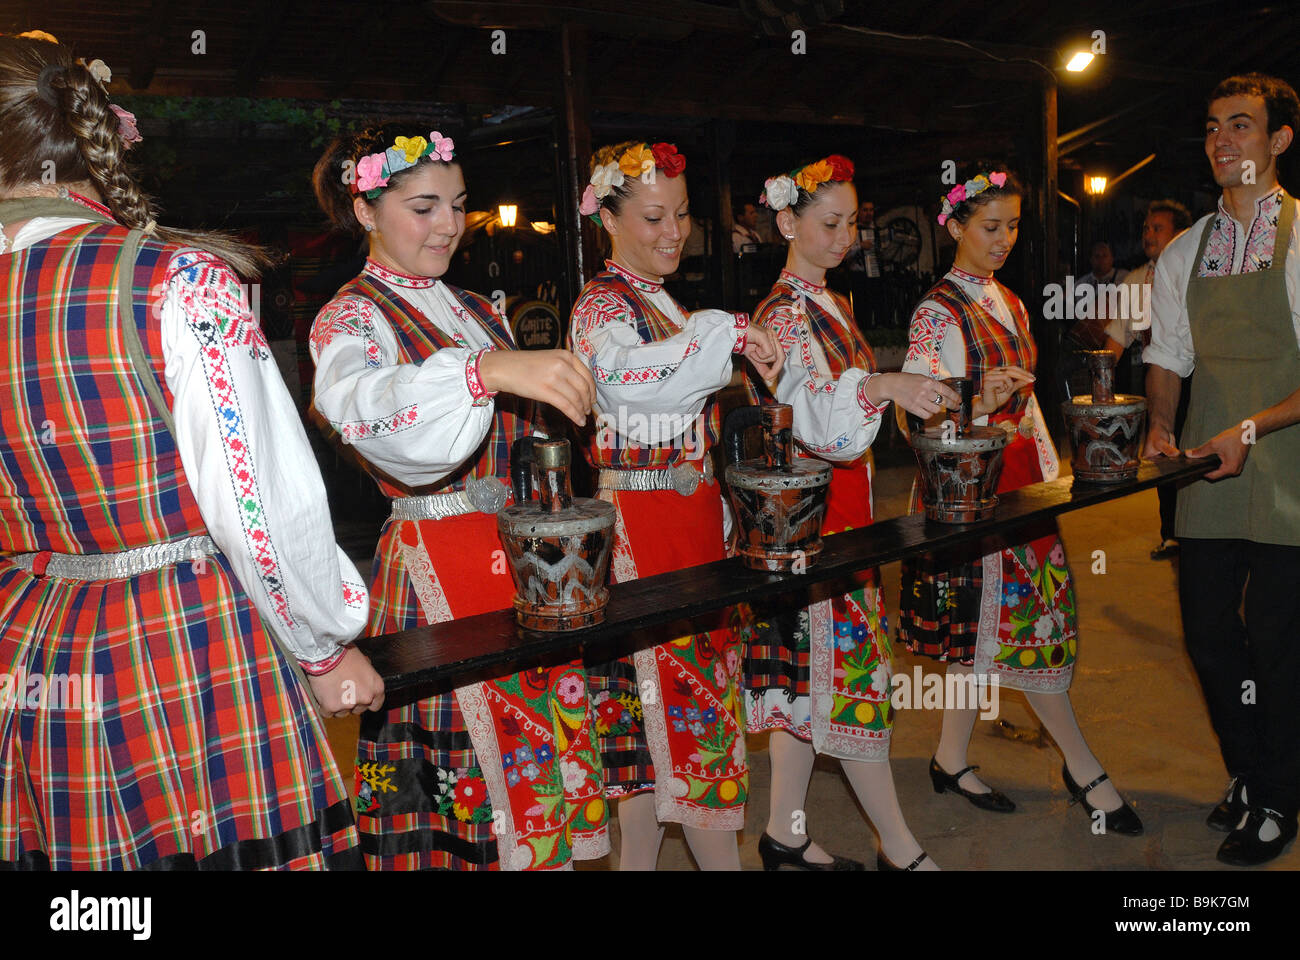 Bulgaria, Black Sea region, Bata, folk dance show - Stock Image